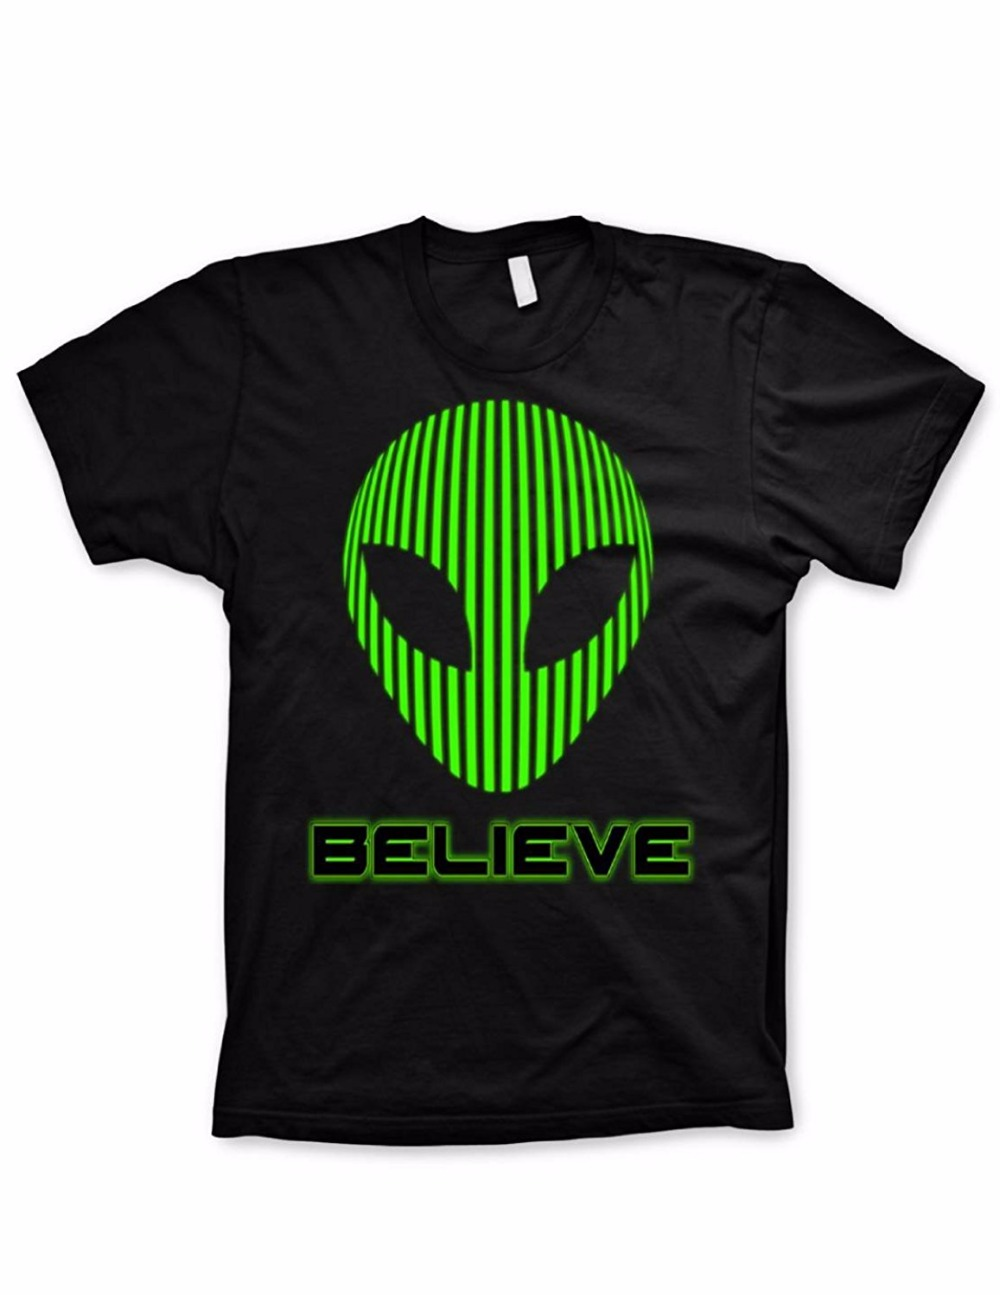 Work Shirts Short Alien Tshirt Believe Shirt Funny Tshirts Science Geeky Nerd Video Game Shirt Men Gift O-Neck Shirts